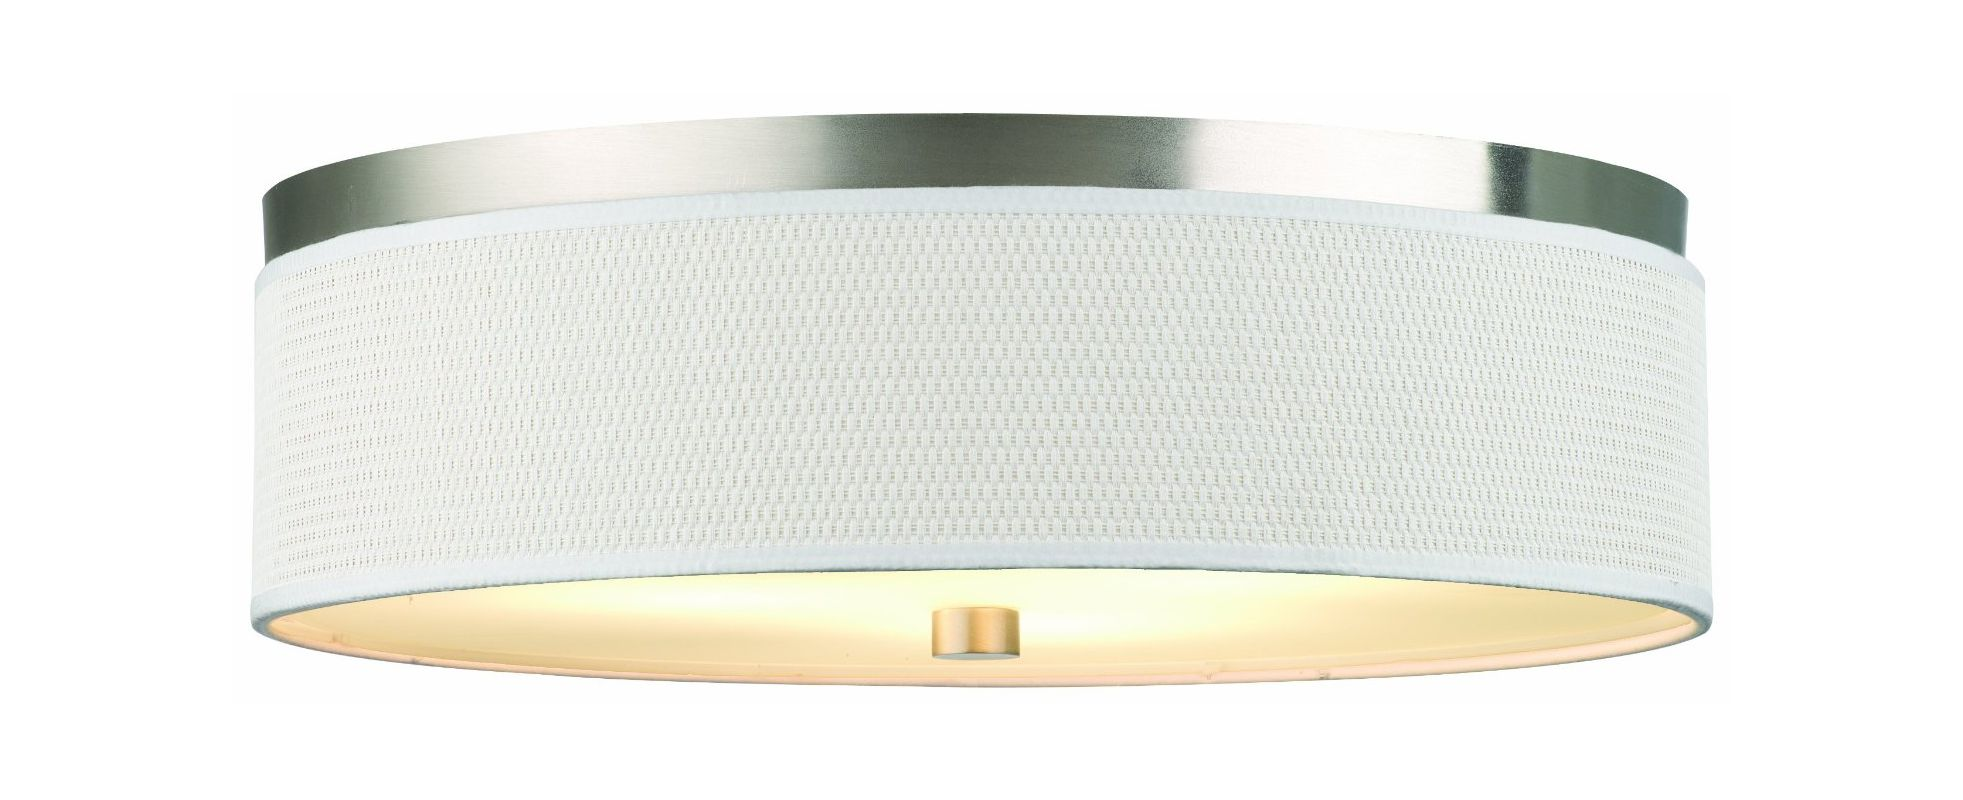 "Forecast Lighting F6155UNV 20.5"" Two Light Energy Efficient Flush"